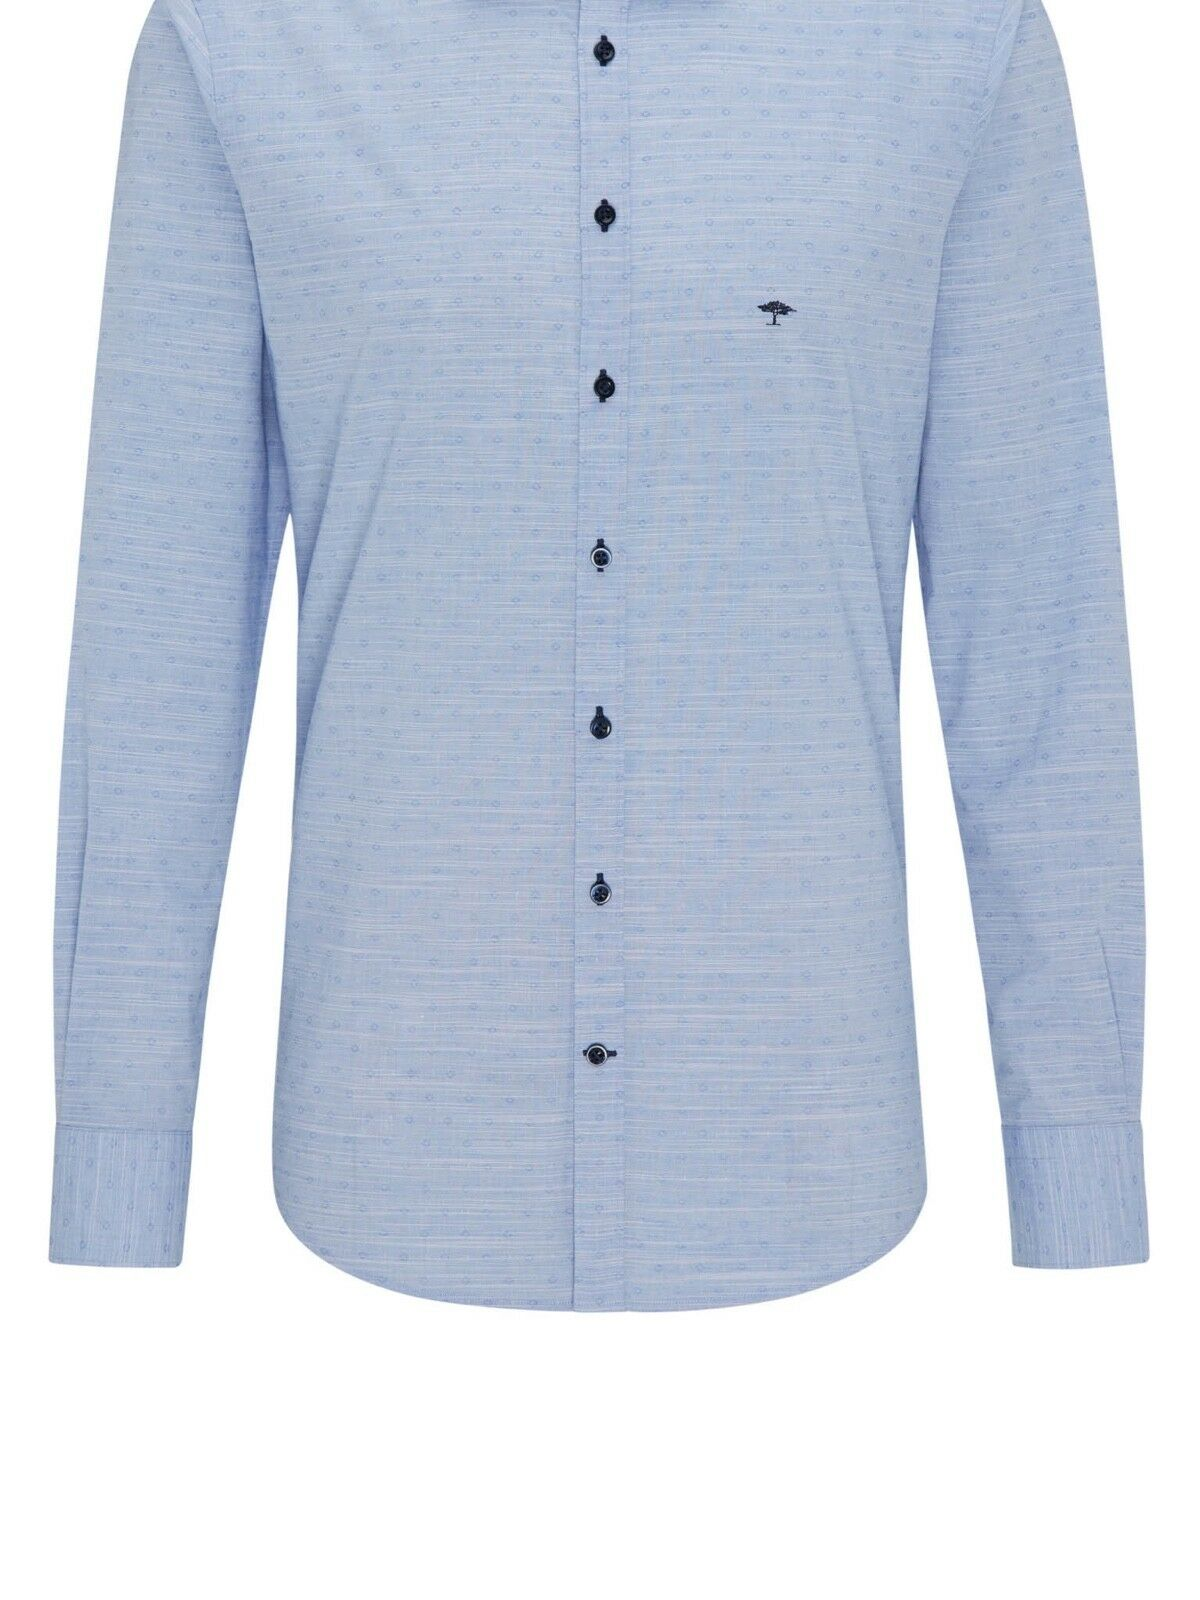 FYNCH HATTON® Premium Casual Jacquard Shirt bluee - 3XL New SS19